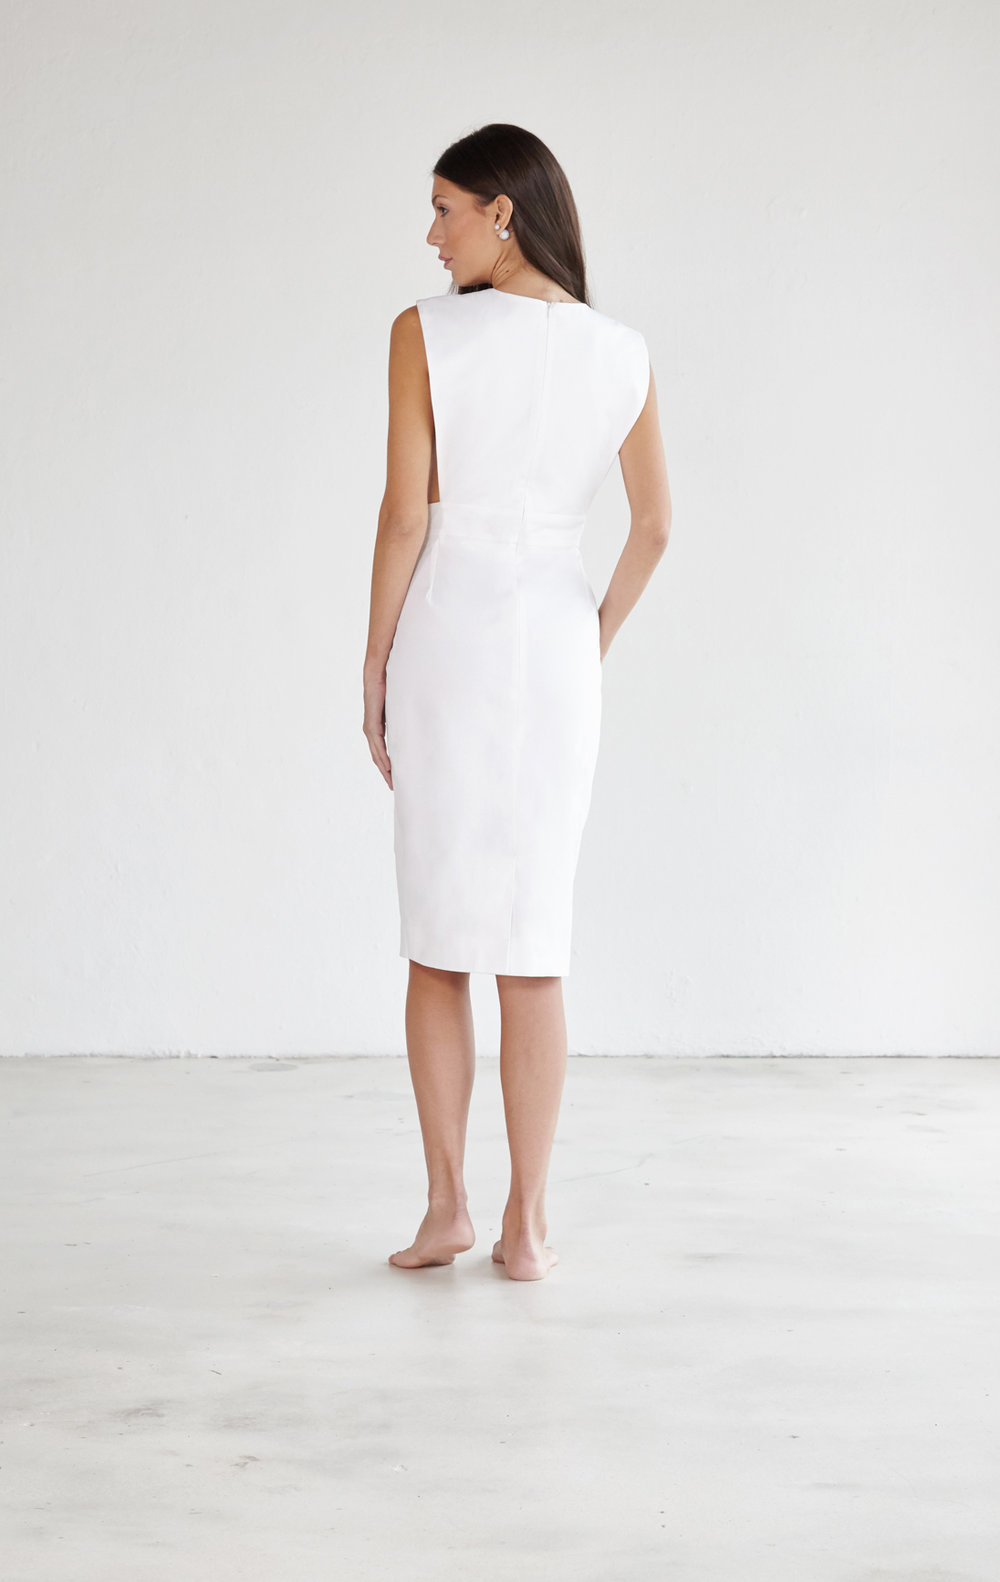 ERIKA_SS16_COLLECTION04158sm.jpg